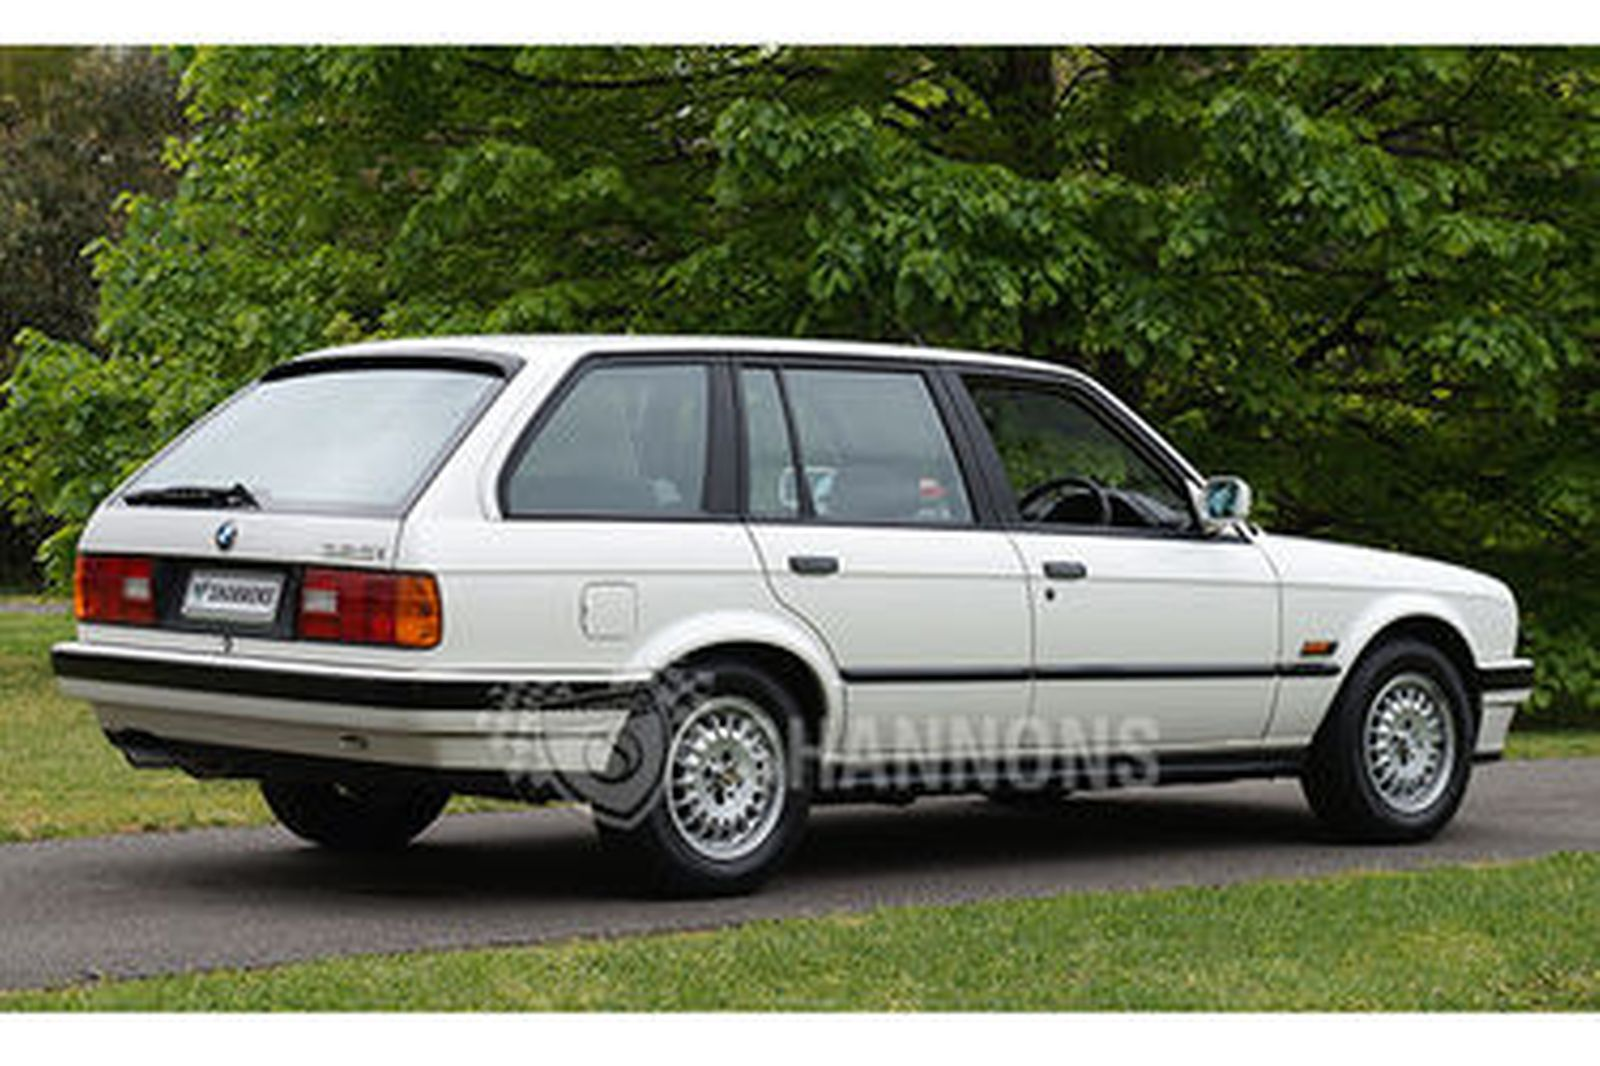 sold bmw 325i e30 touring wagon auctions lot 4 shannons. Black Bedroom Furniture Sets. Home Design Ideas